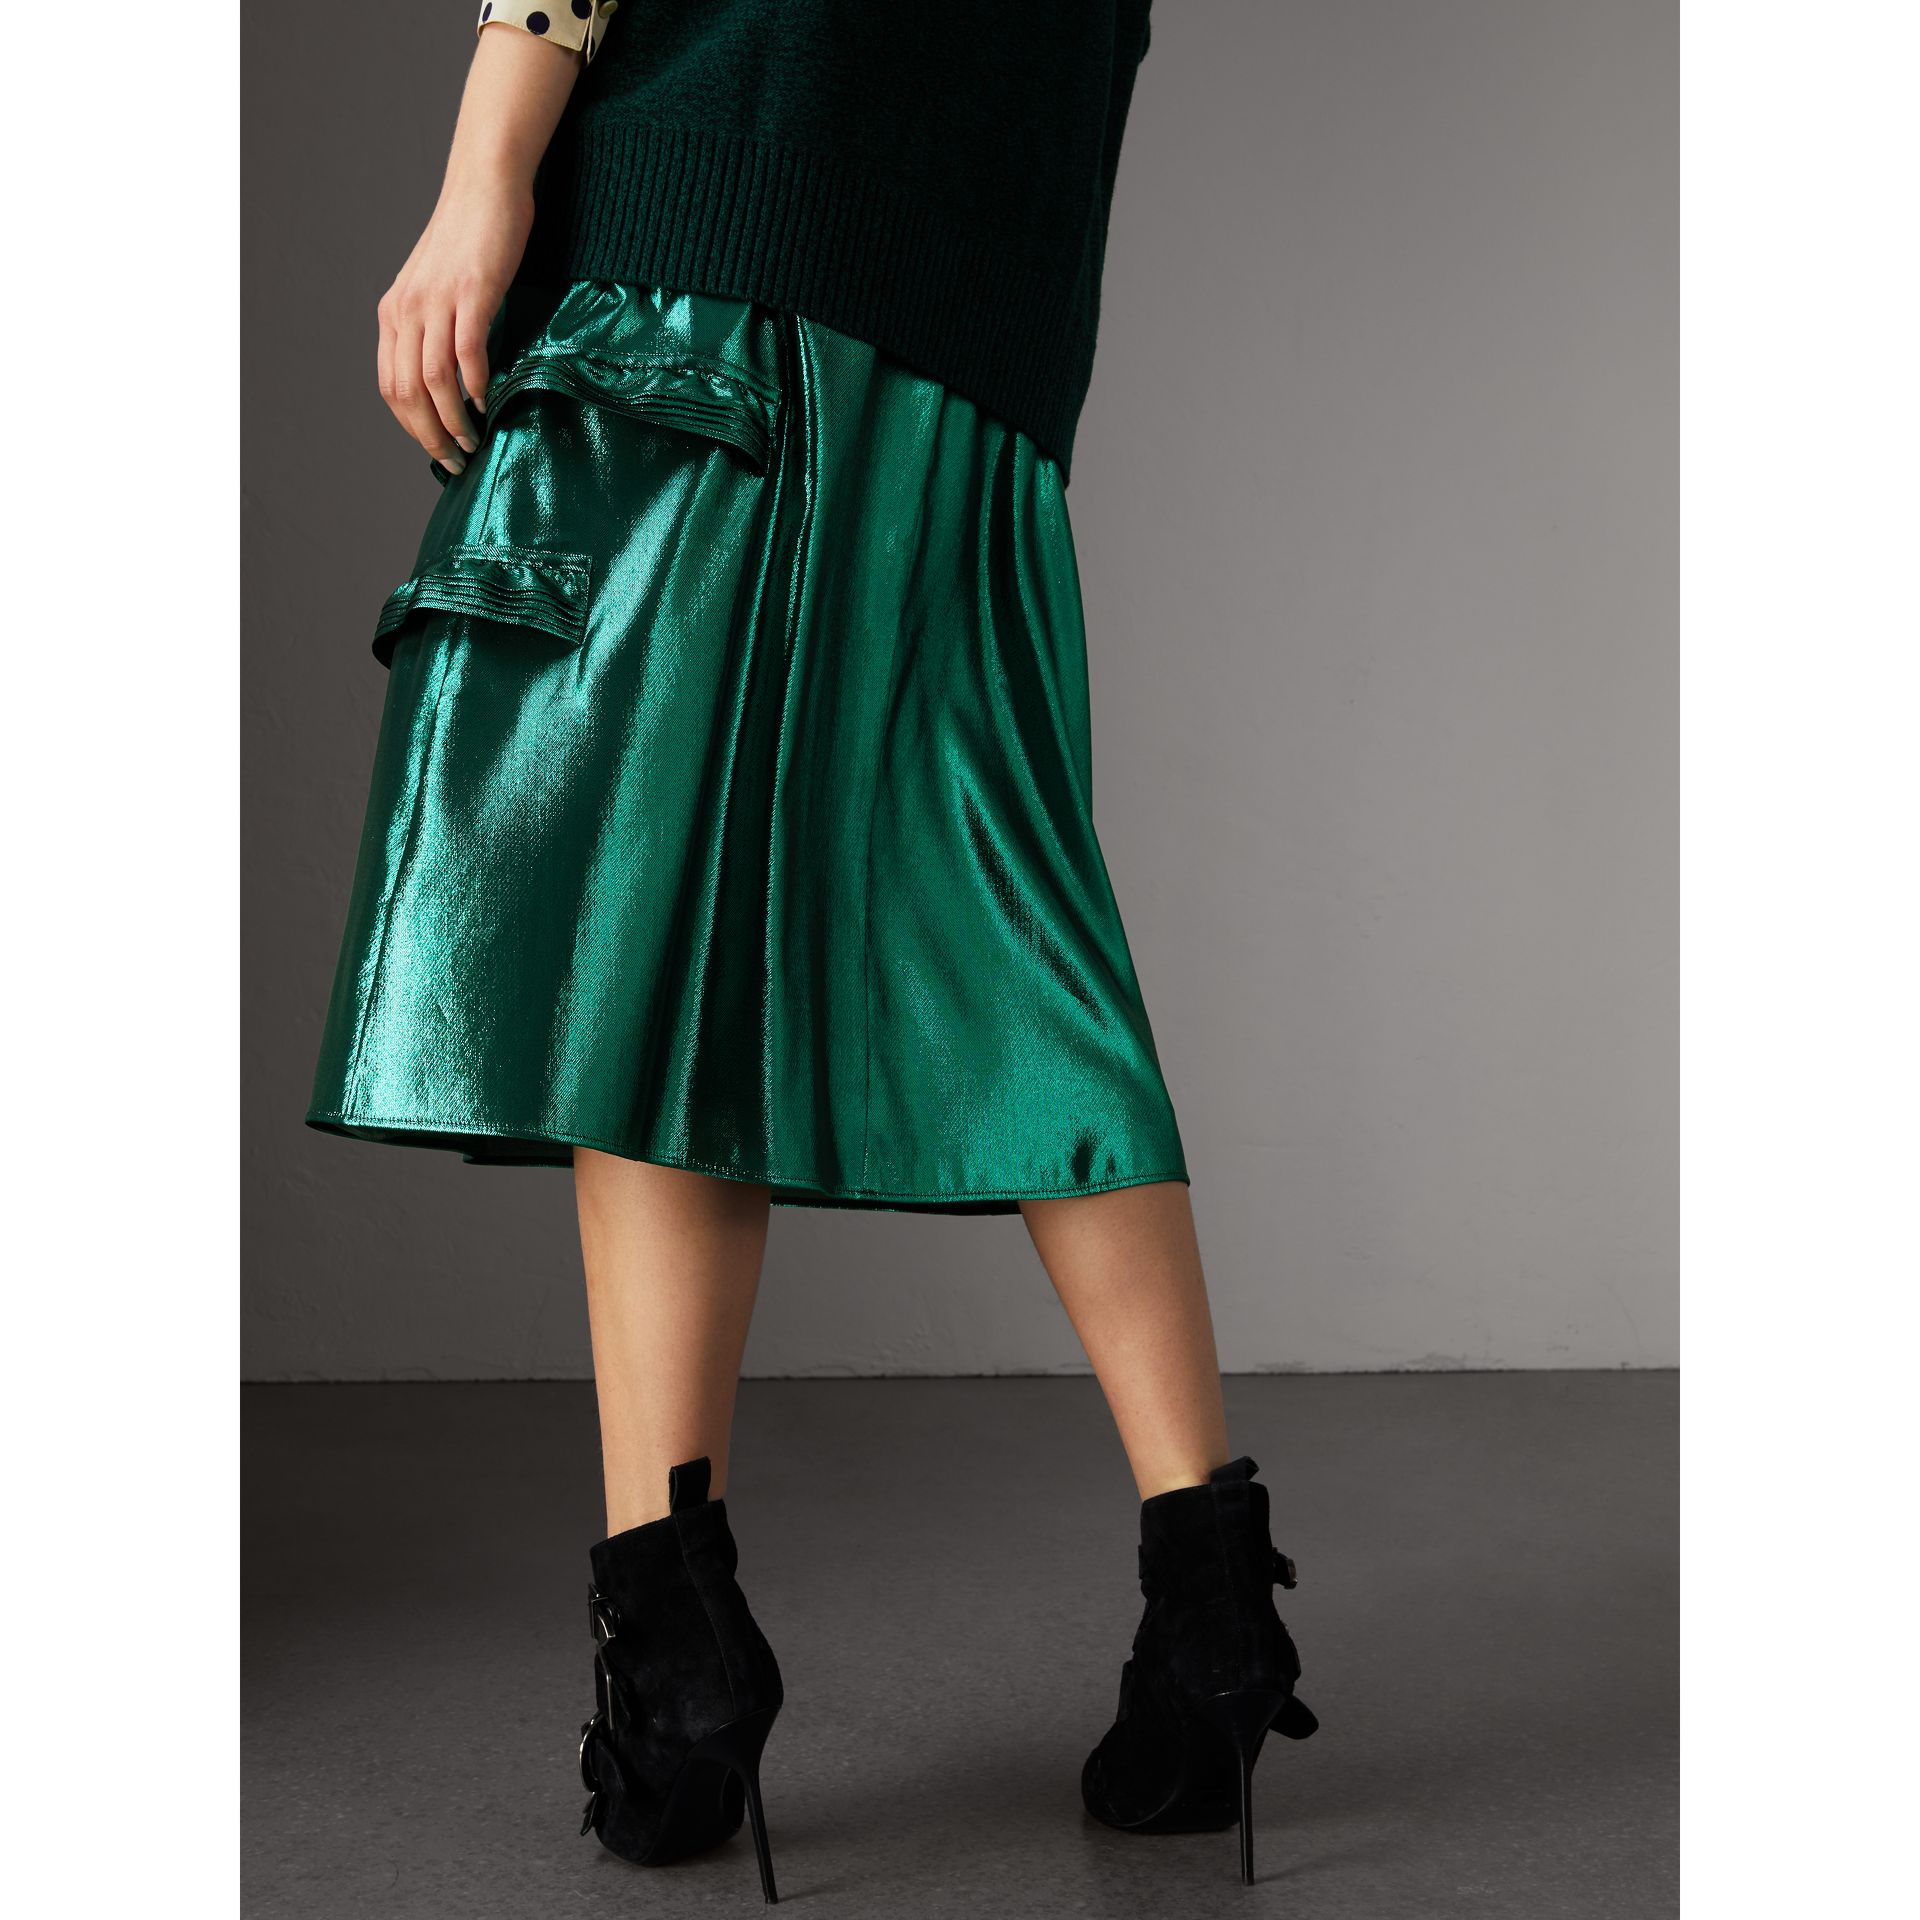 Ruffle Detail Lamé Skirt – Online Exclusive in Turquoise - Women | Burberry Singapore - gallery image 2